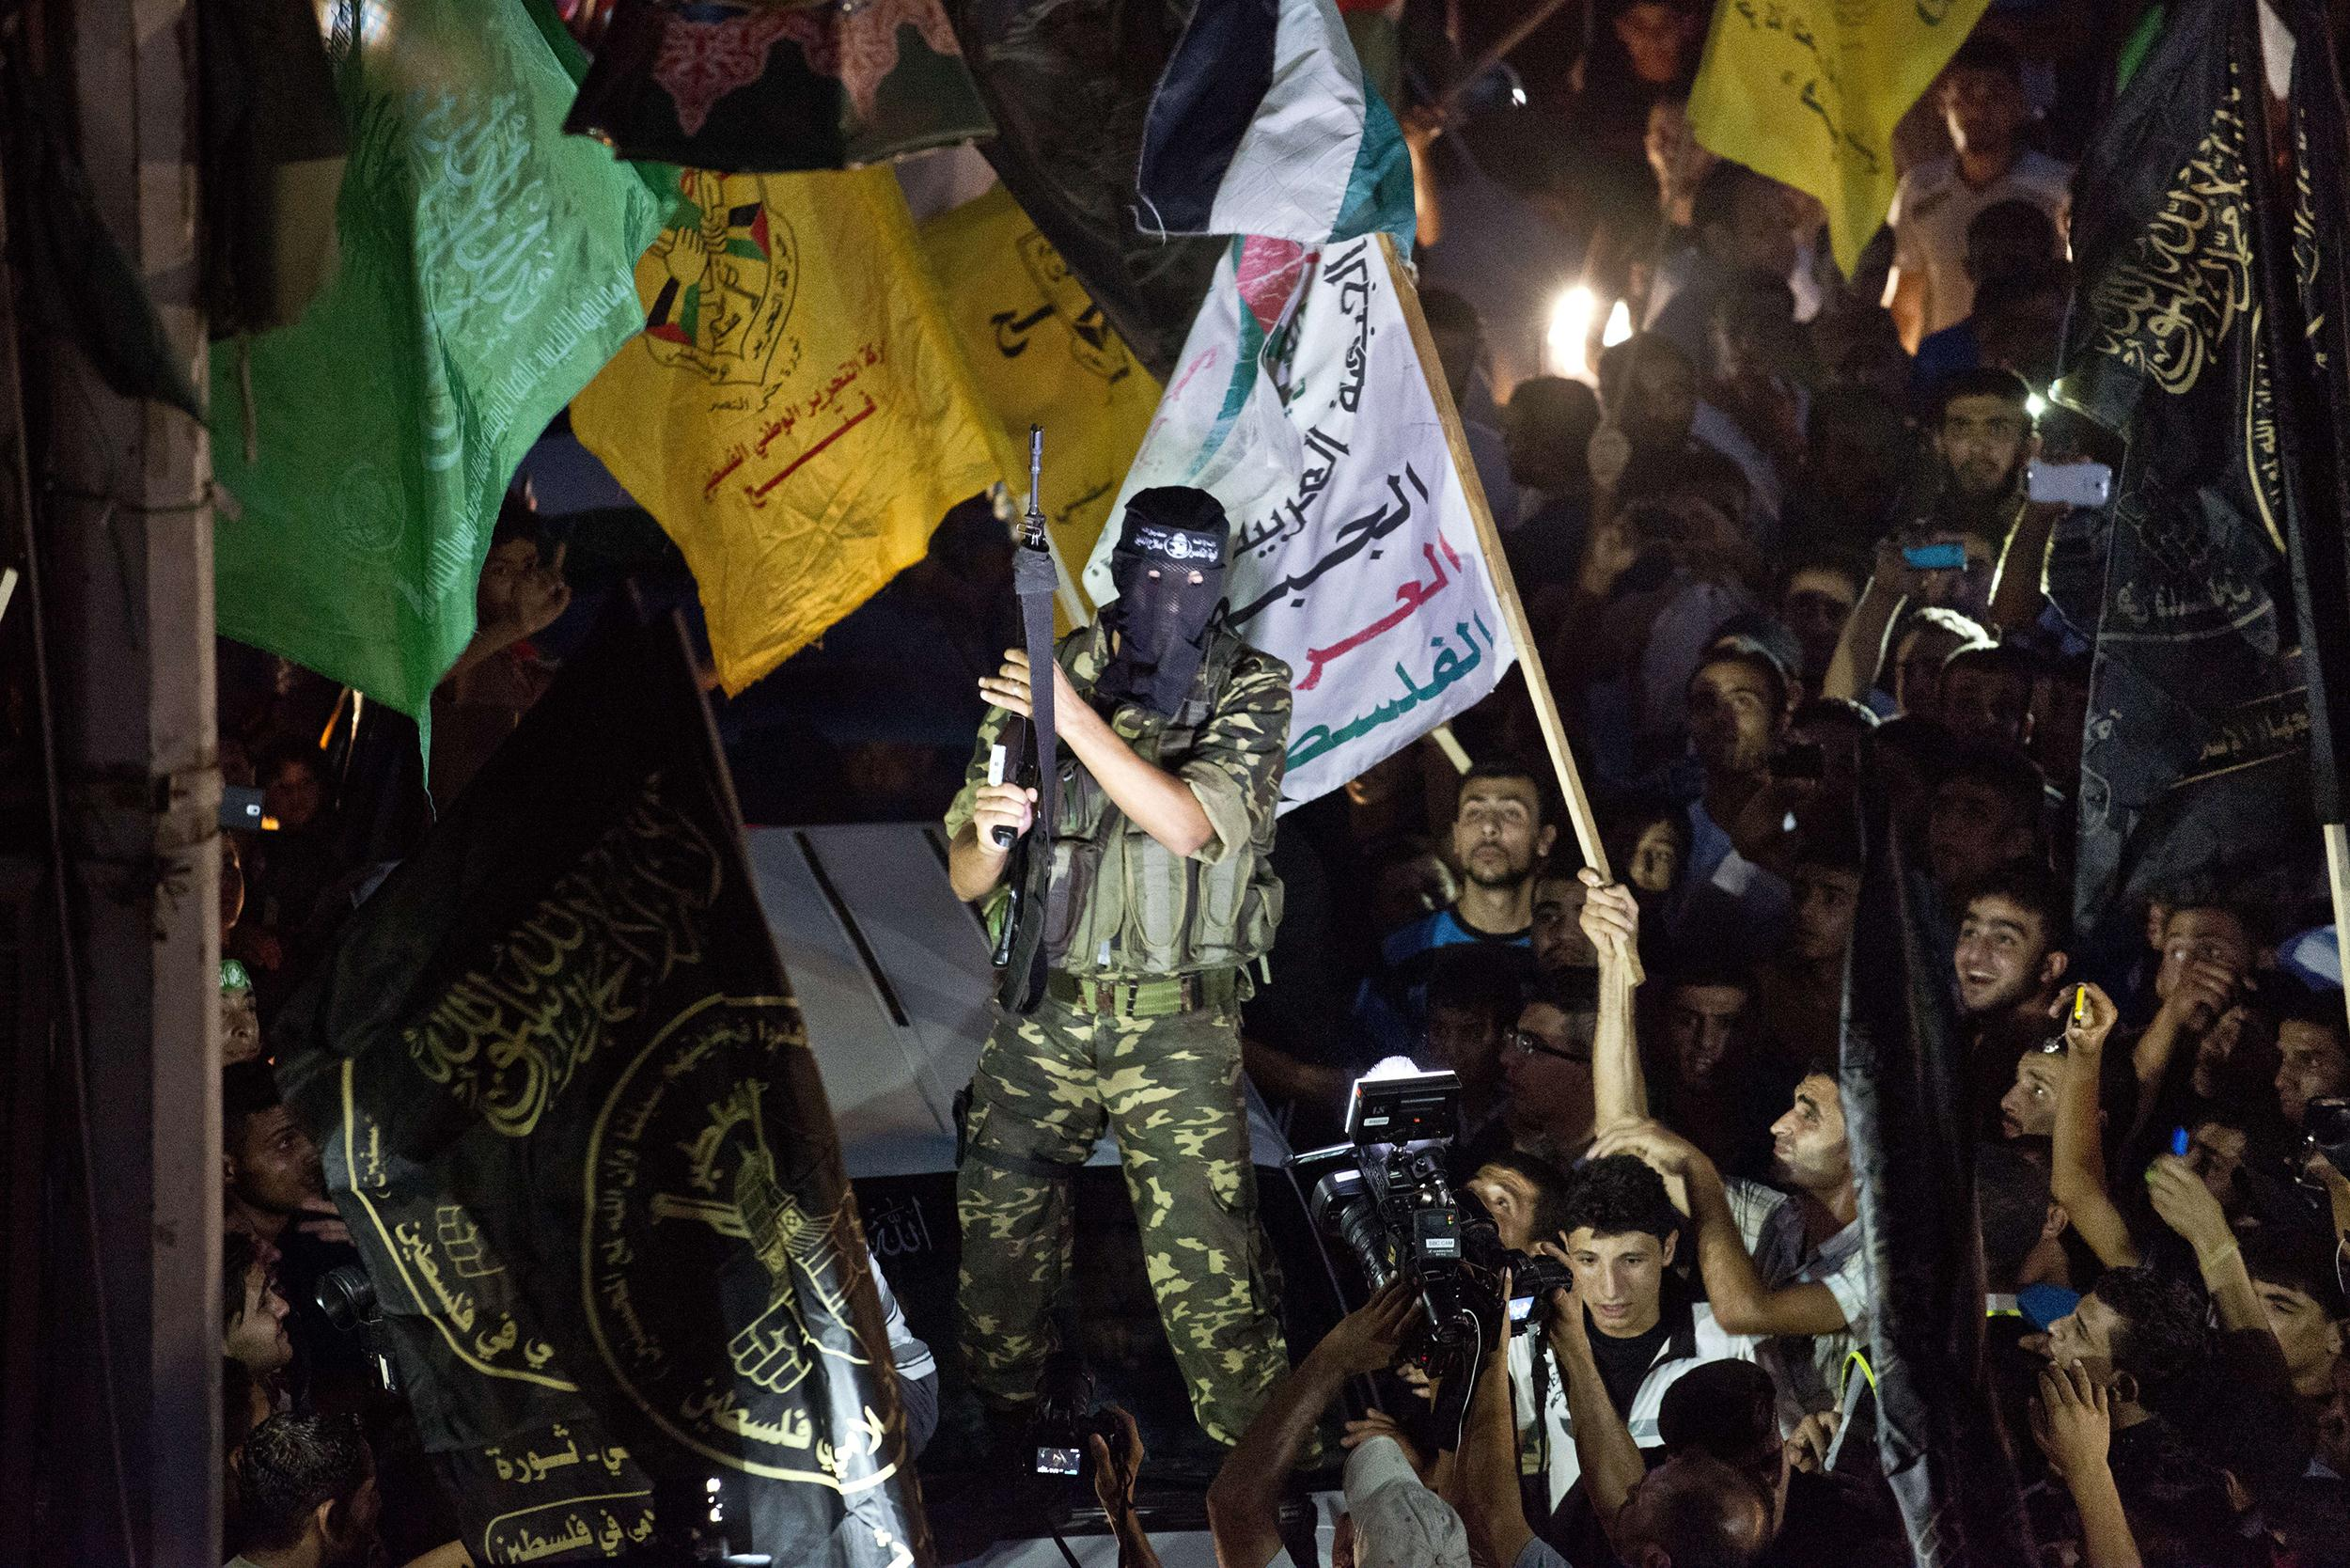 Image:A Hamas militant brandishes his weapon as he fires rounds into the air after joining hundreds of Gazans gathered at an intersecition in Gaza City on Aug. 26,